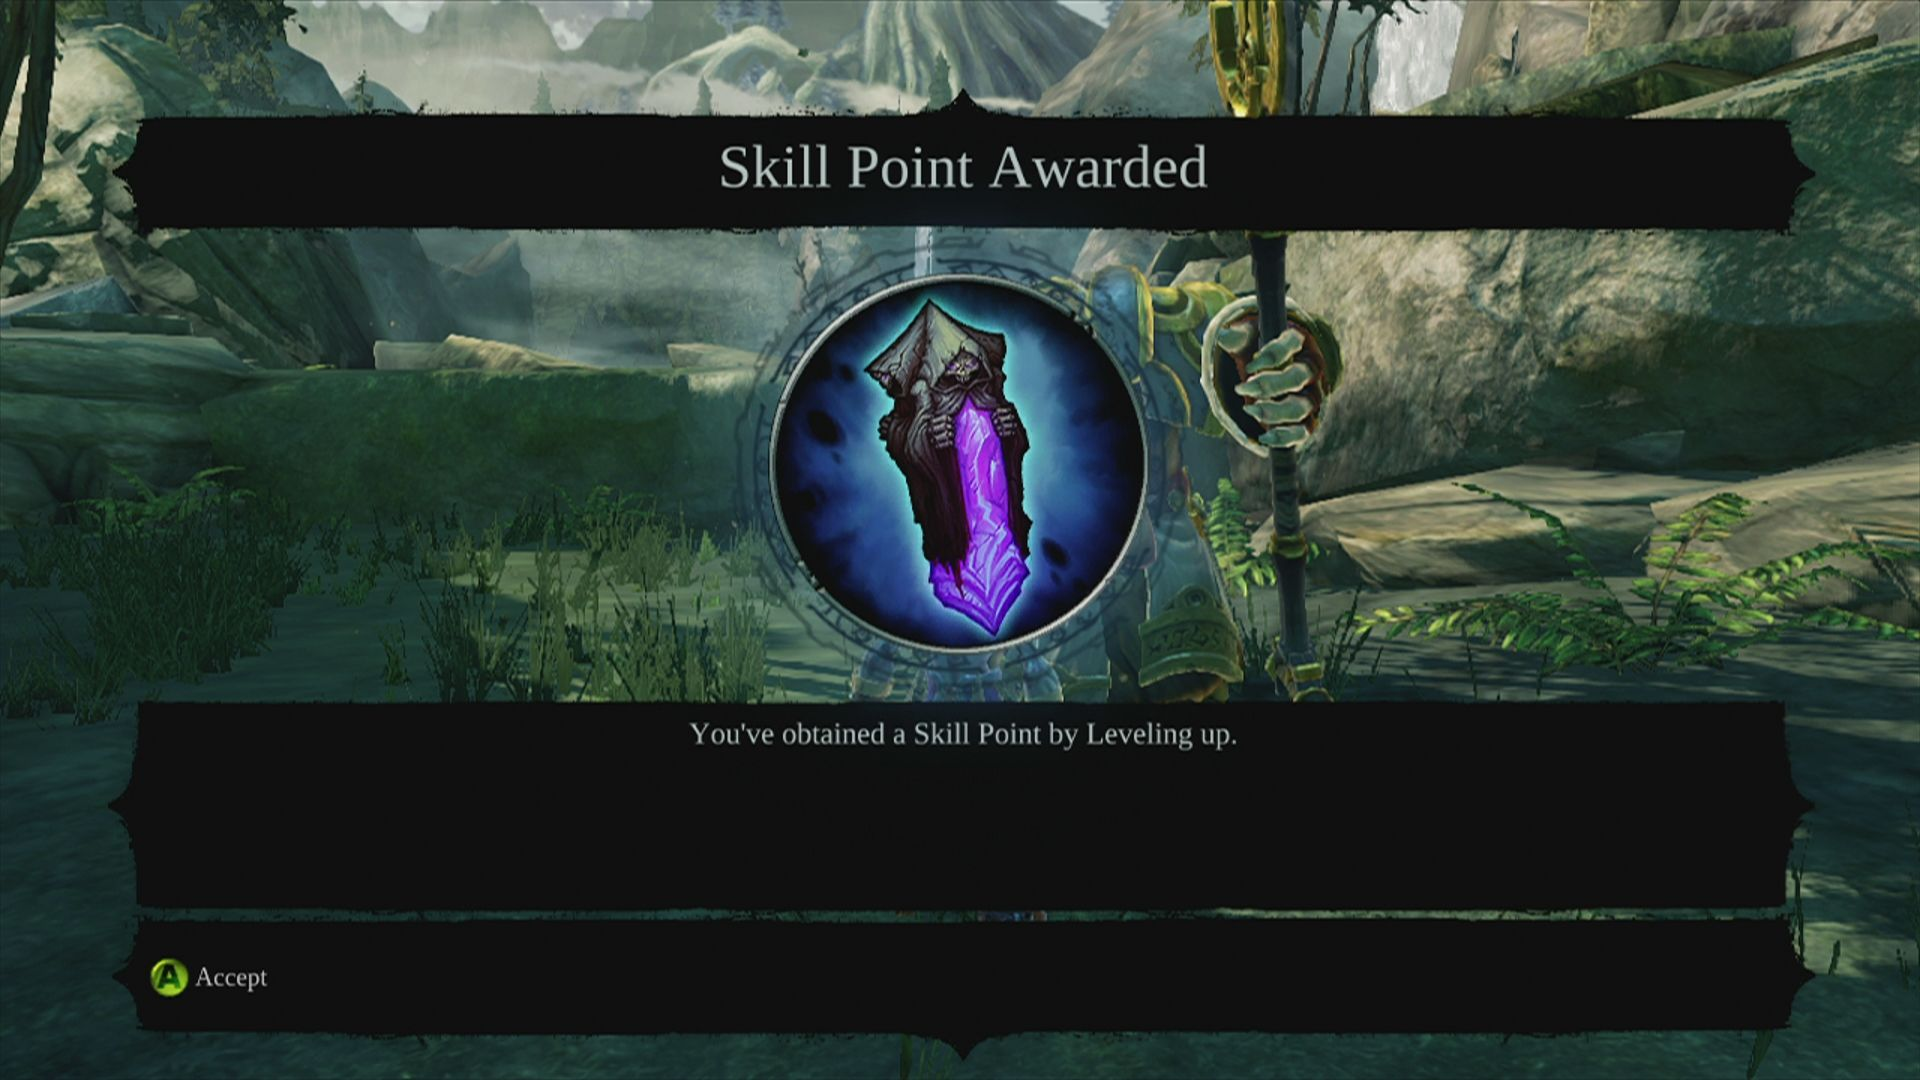 Darksiders II Xbox 360 Skill points are needed to master the skill trees